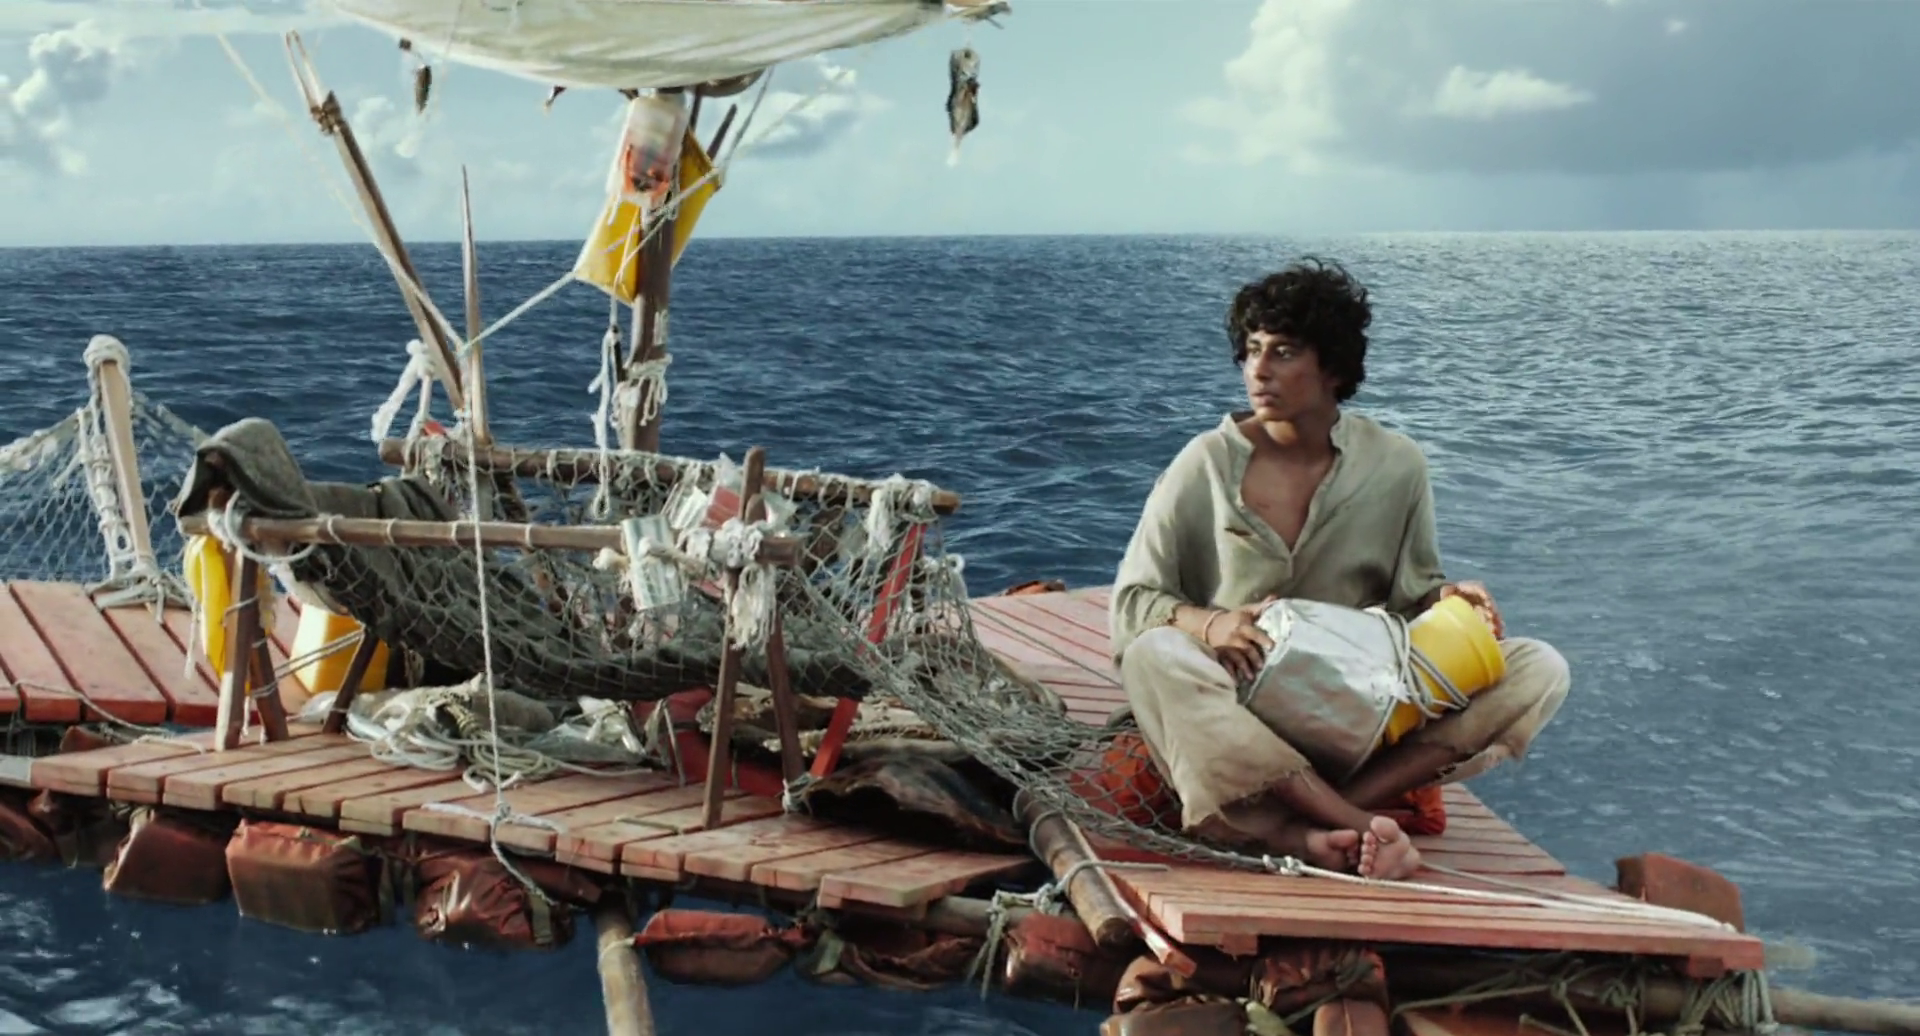 Life of pi 4k uhd review redvdit for Life of pi characters animals